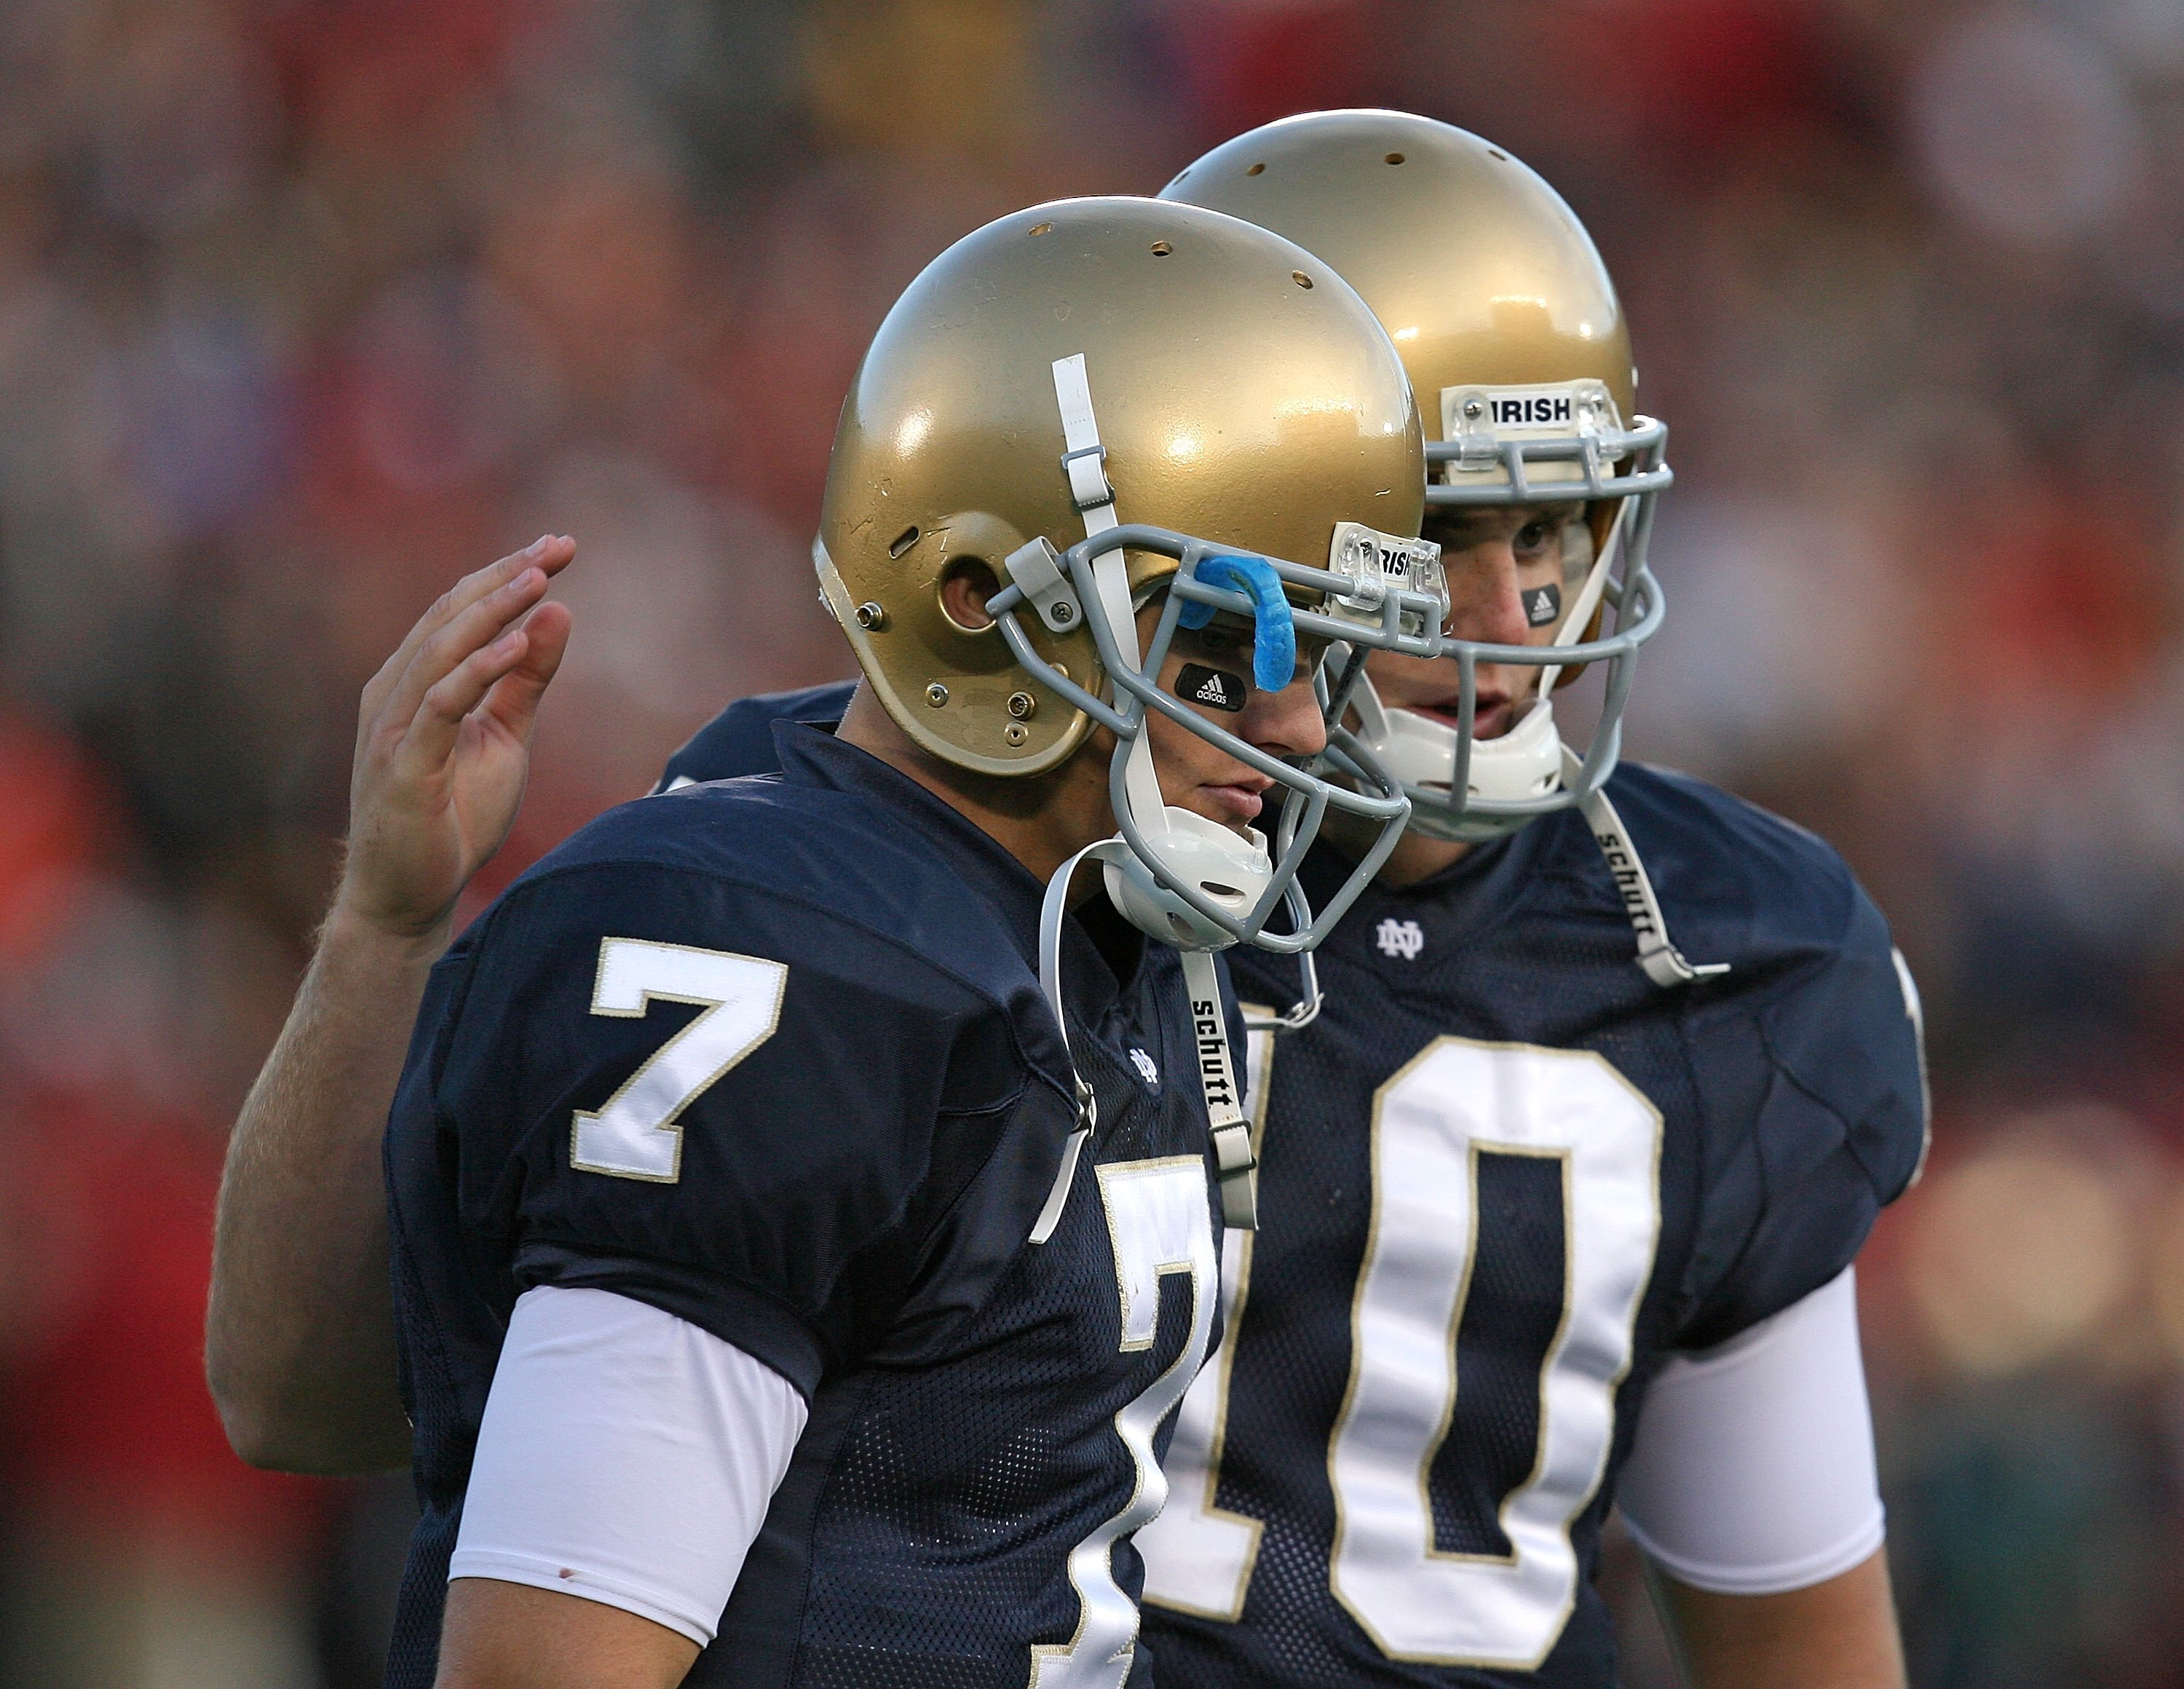 SOUTH BEND, IN - OCTOBER 17: Jimmy Clausen #7 of the Notre Dame Fighting Irish is consoled by teammate Dayne Crist #10 during a game against the USC Trojans at Notre Dame Stadium on October 17, 2009 in South Bend, Indiana. USC defeated Notre Dame 34-27. (